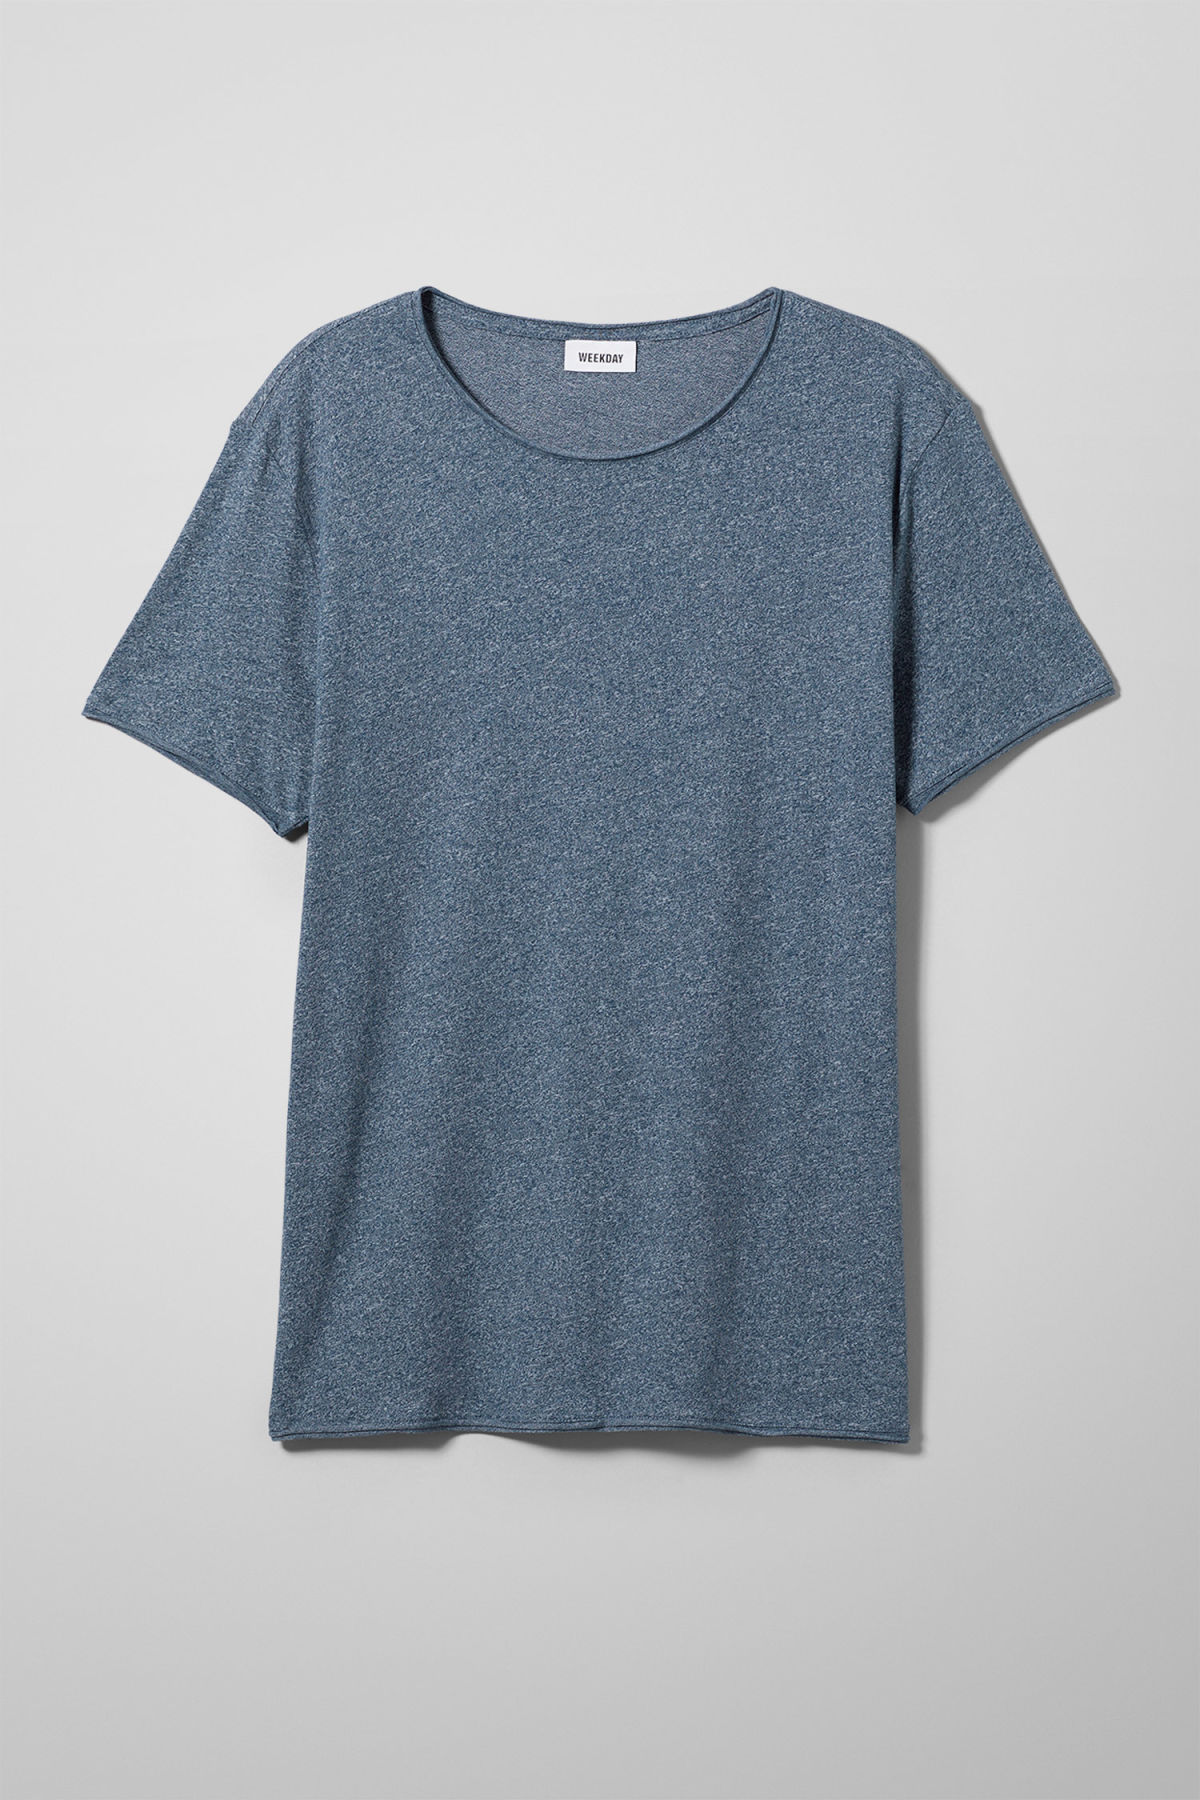 Front image of Weekday dark t-shirt in turquoise